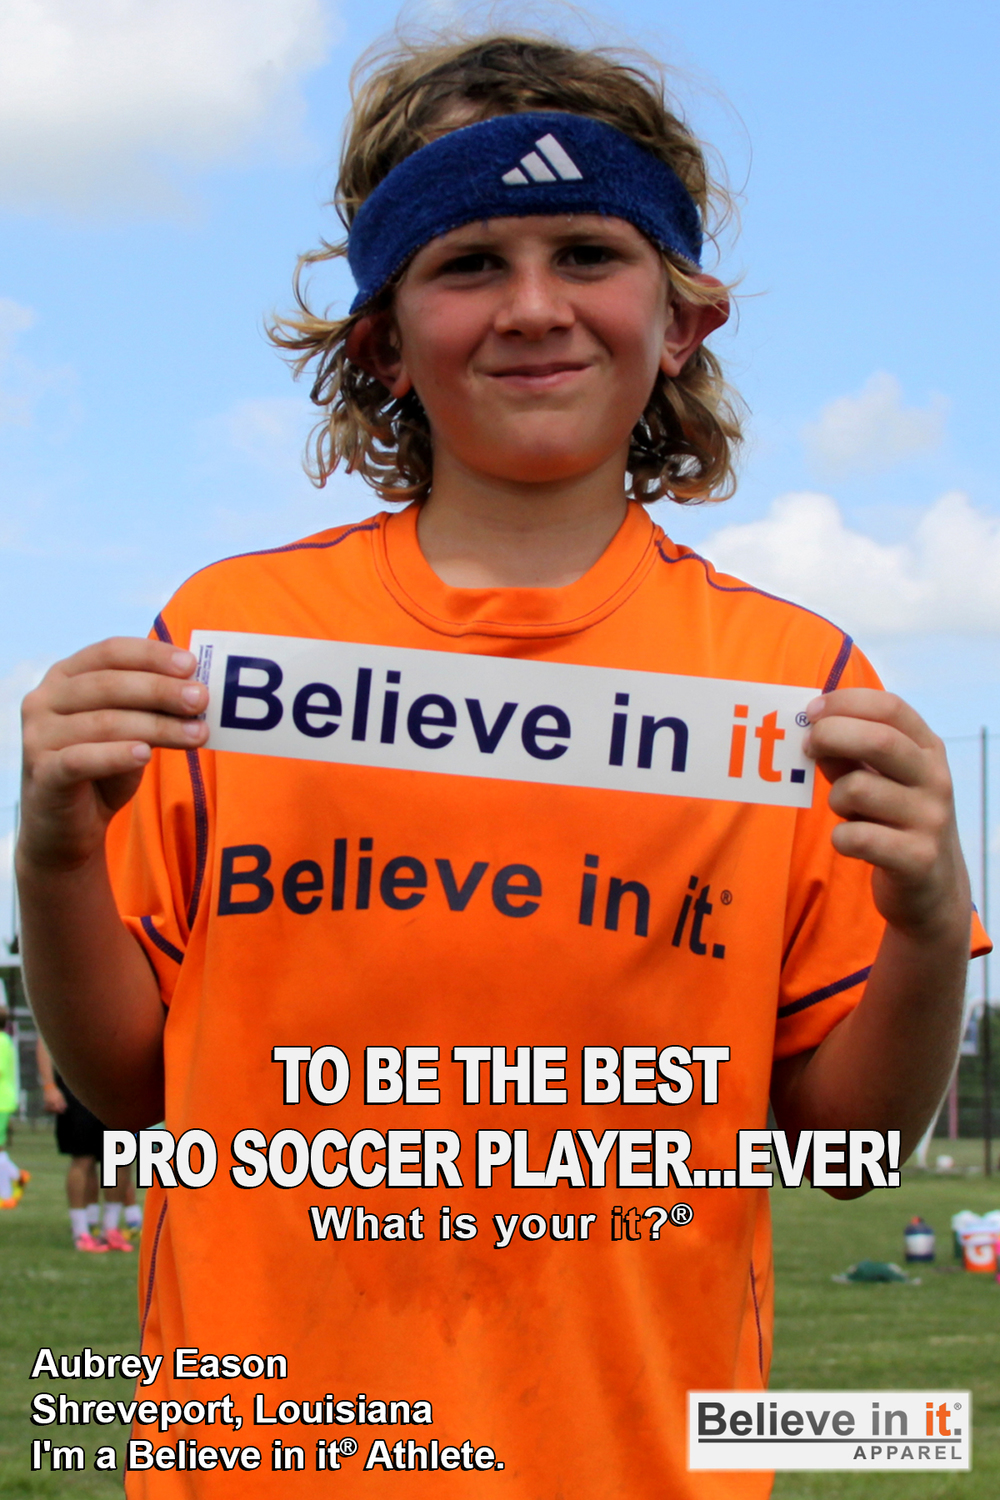 Aubrey Eason Believe in it Athlete